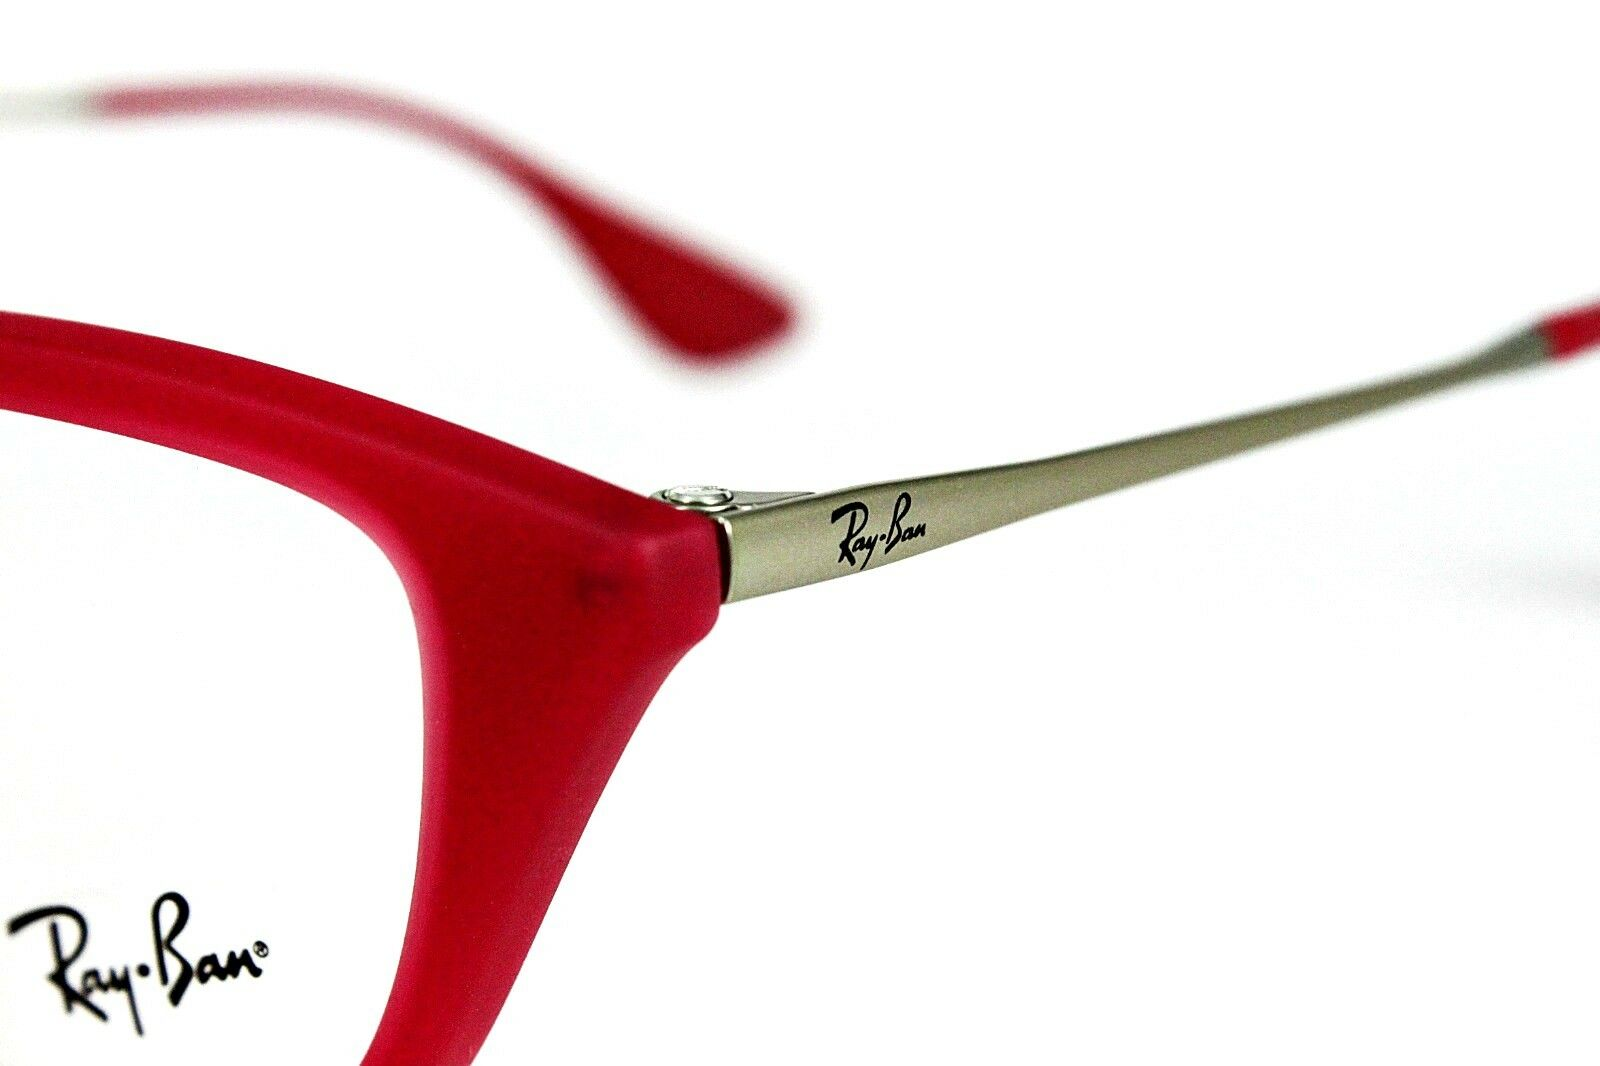 Ray Ban Eyeglasses RB7042 5471 Rx-ABLE 54mm